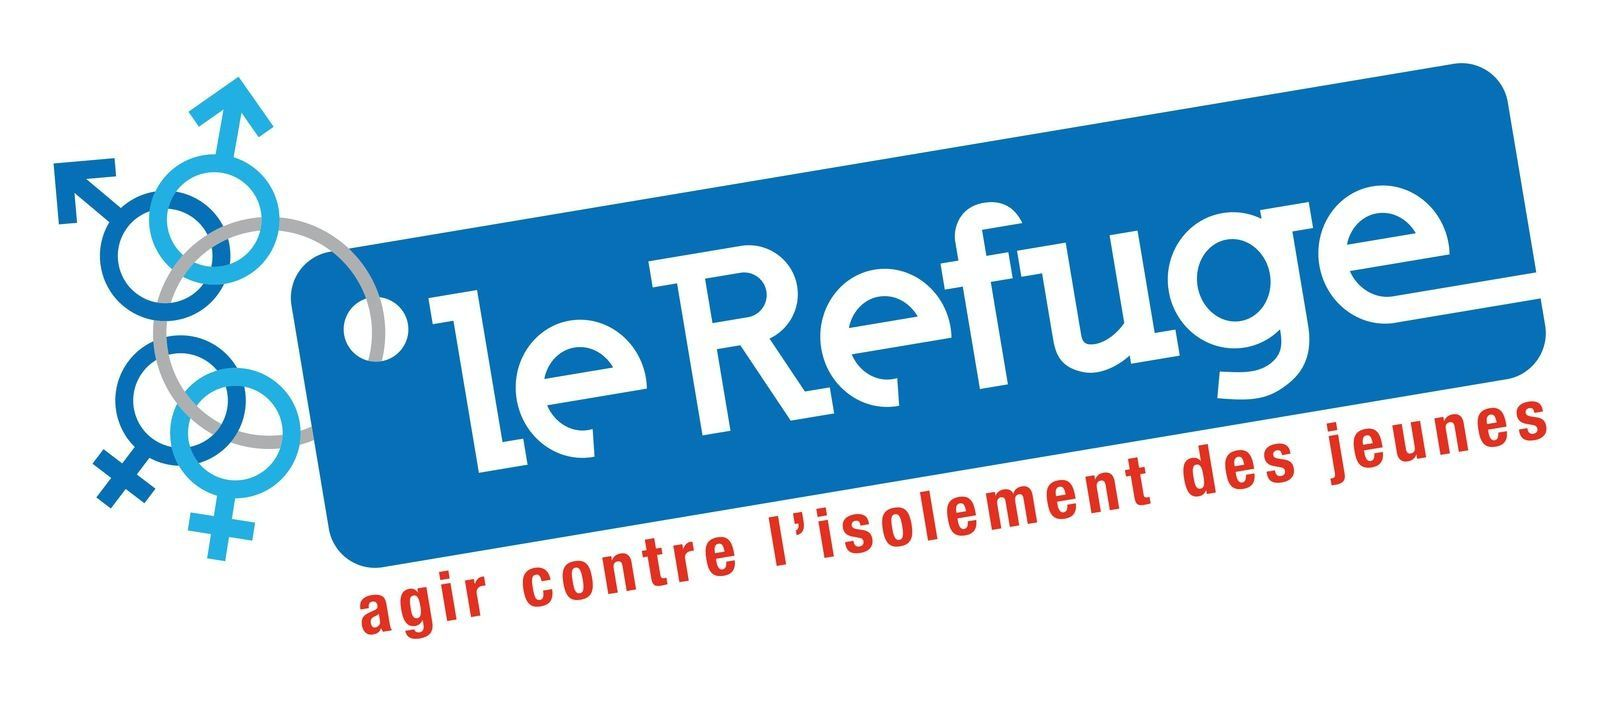 L'association Le Refuge consternée par une séquence de TPMP Radio Baba.